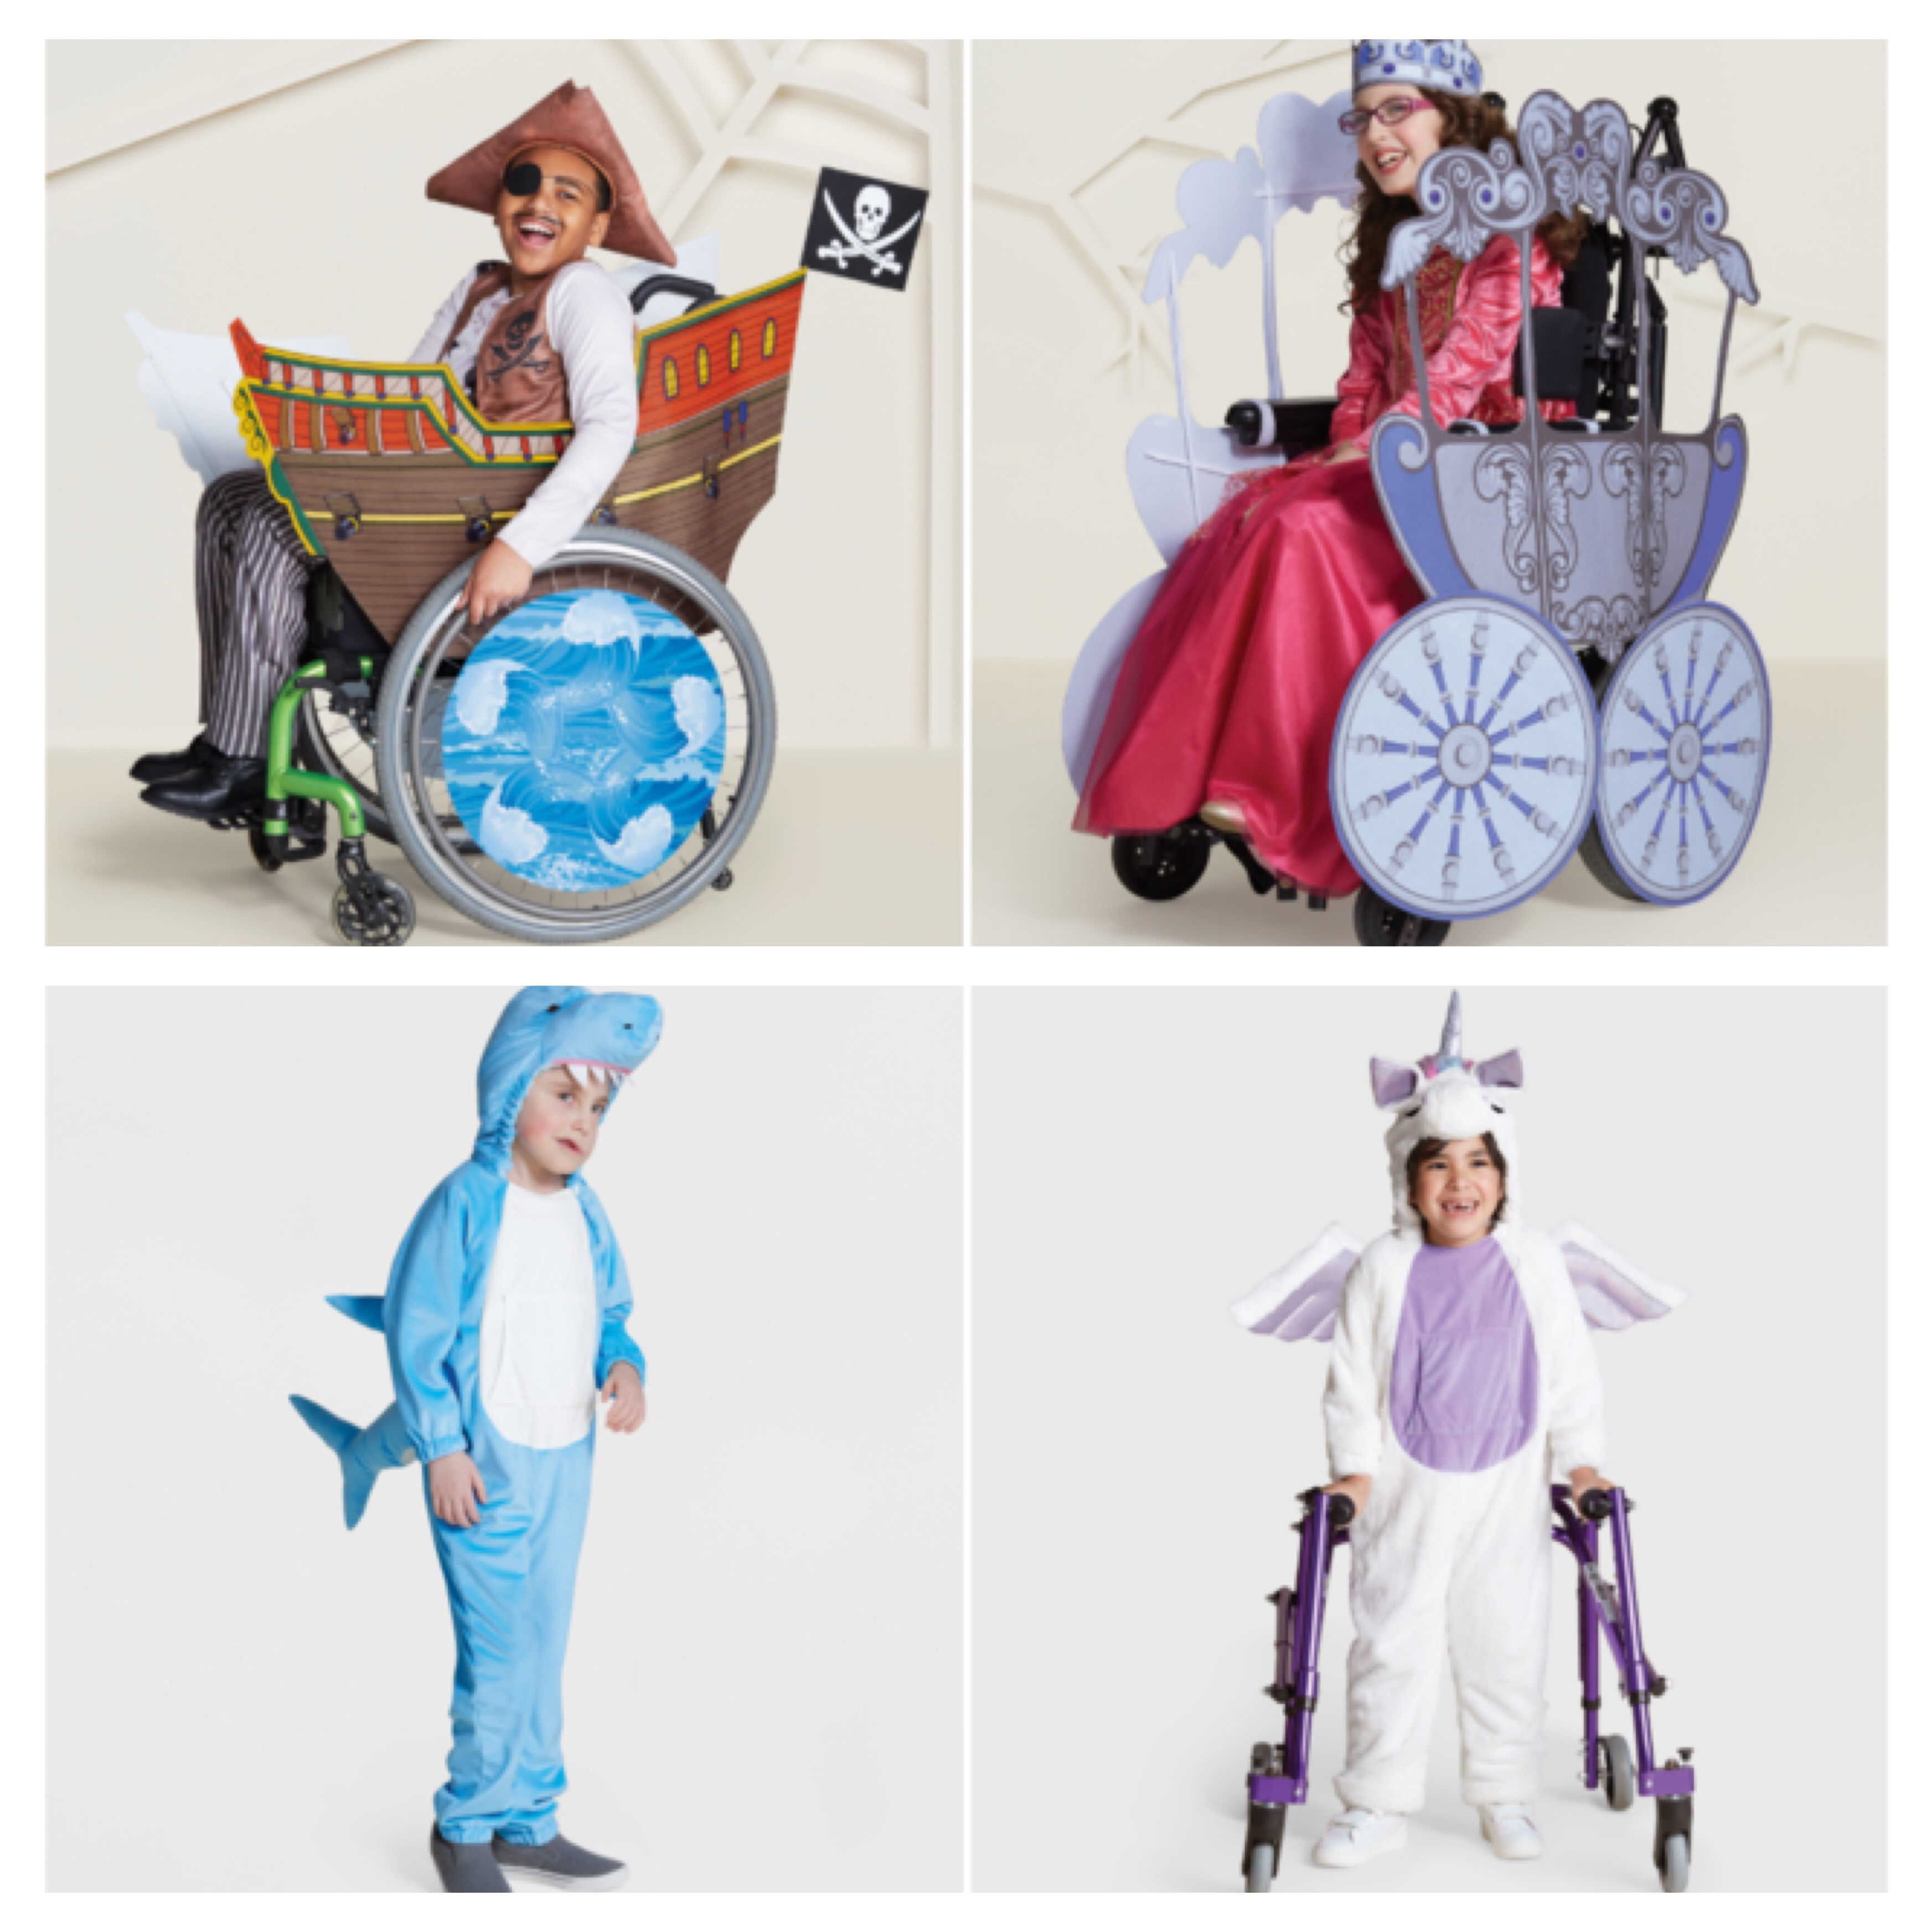 Halloween Costumes for those in wheel chairs, sensory sensitivity